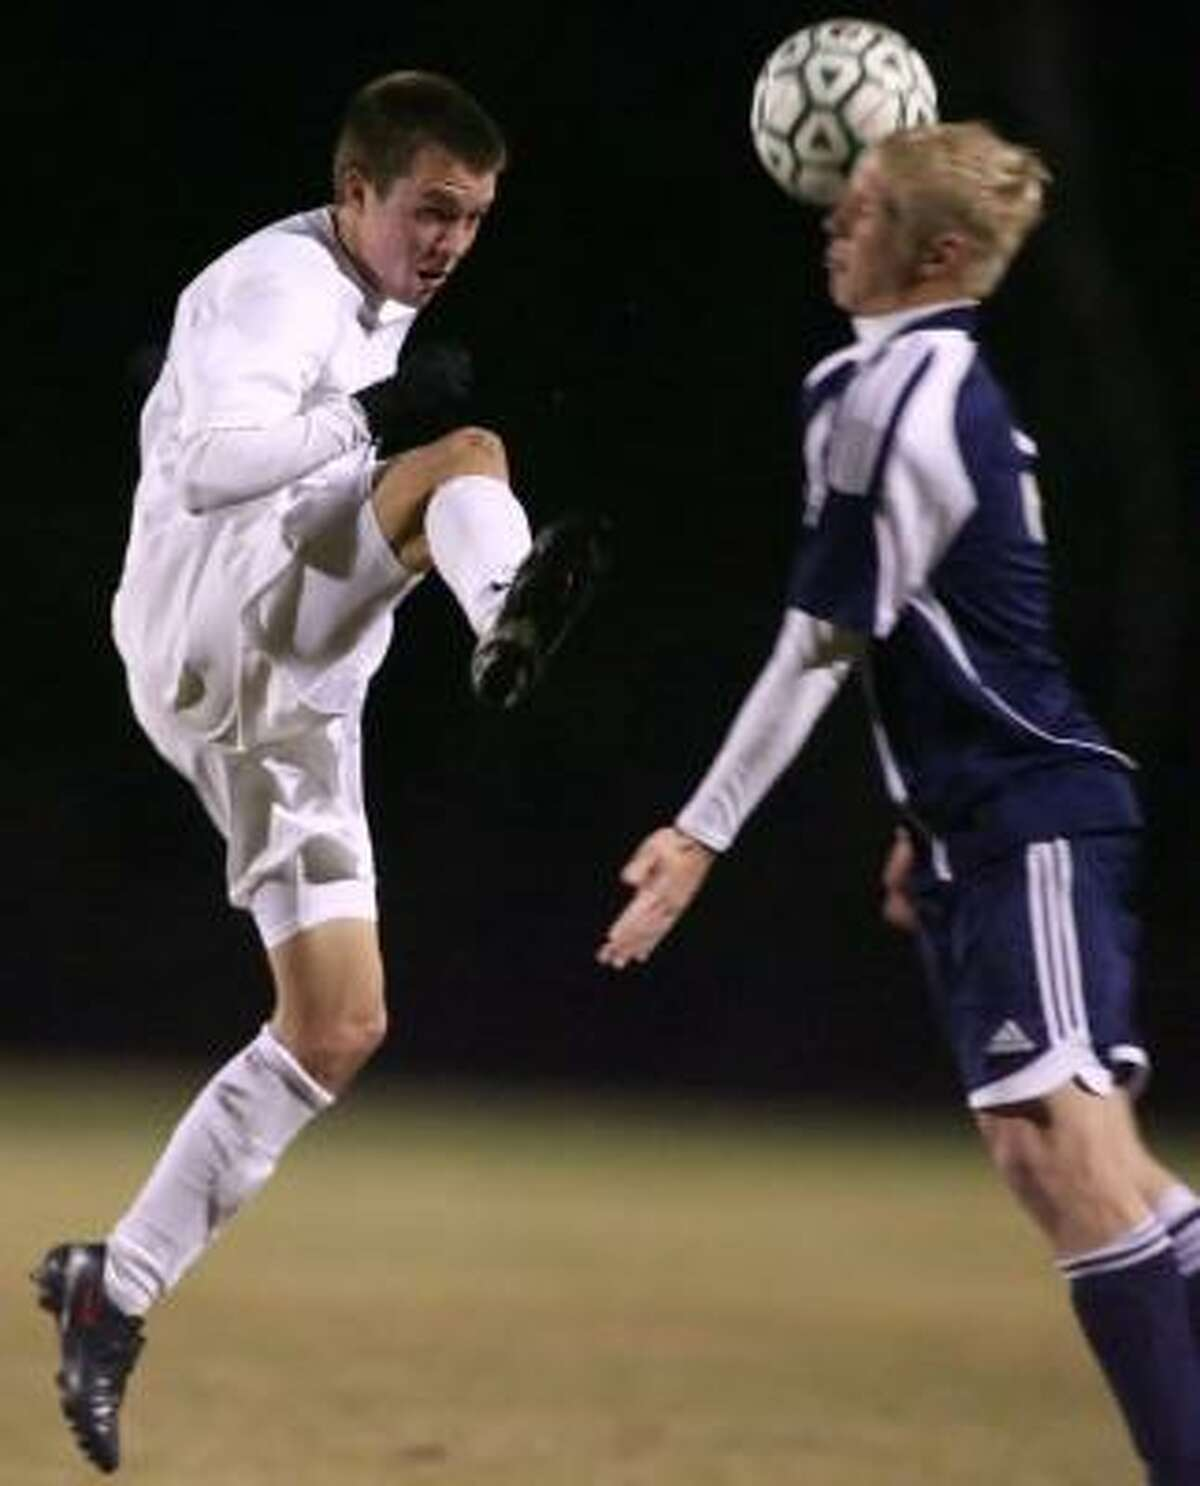 Kingwood's Michael Micheletti (right) takes a kick off his head from The Woodlands' Jordan Phillips during their match Friday night at The Woodlands High School.